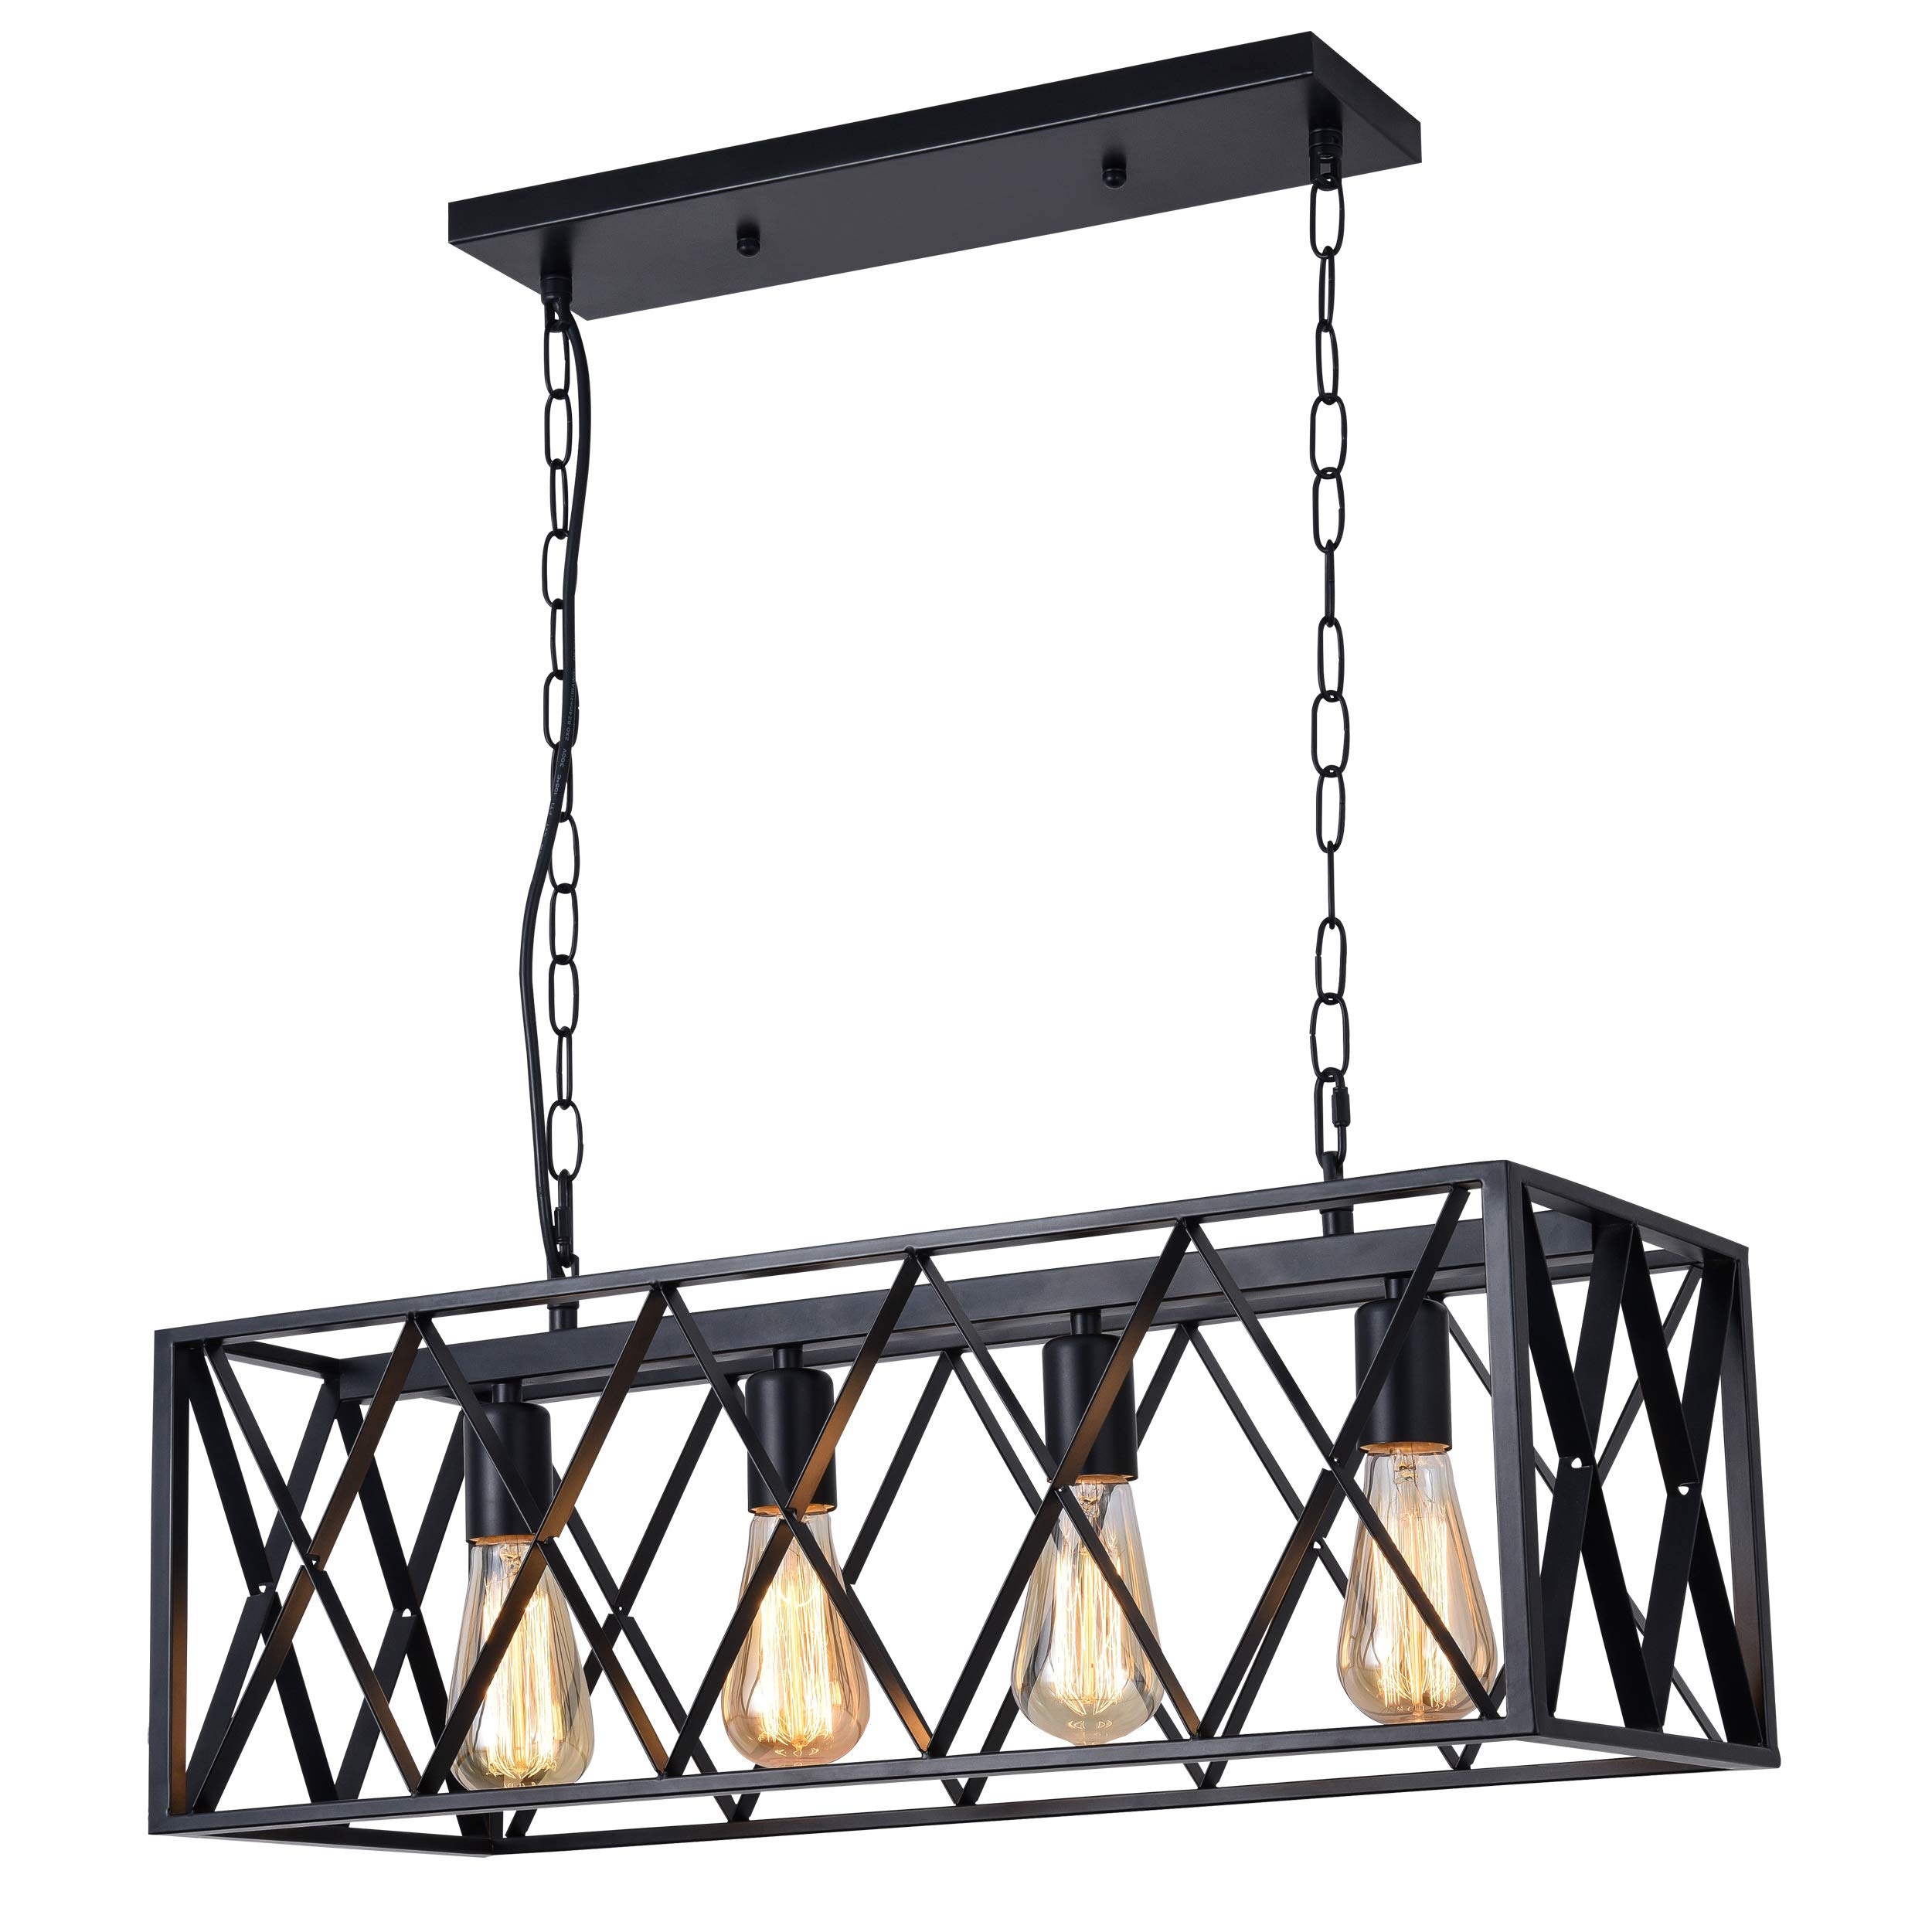 ISRAMP Kitchen Island Lighting Fixtures, 4-Light Rectangle Iron Matte Black Shade Industrial Pendant Light Rustic Farmhouse Chandelier by ISRAMP (Image #2)